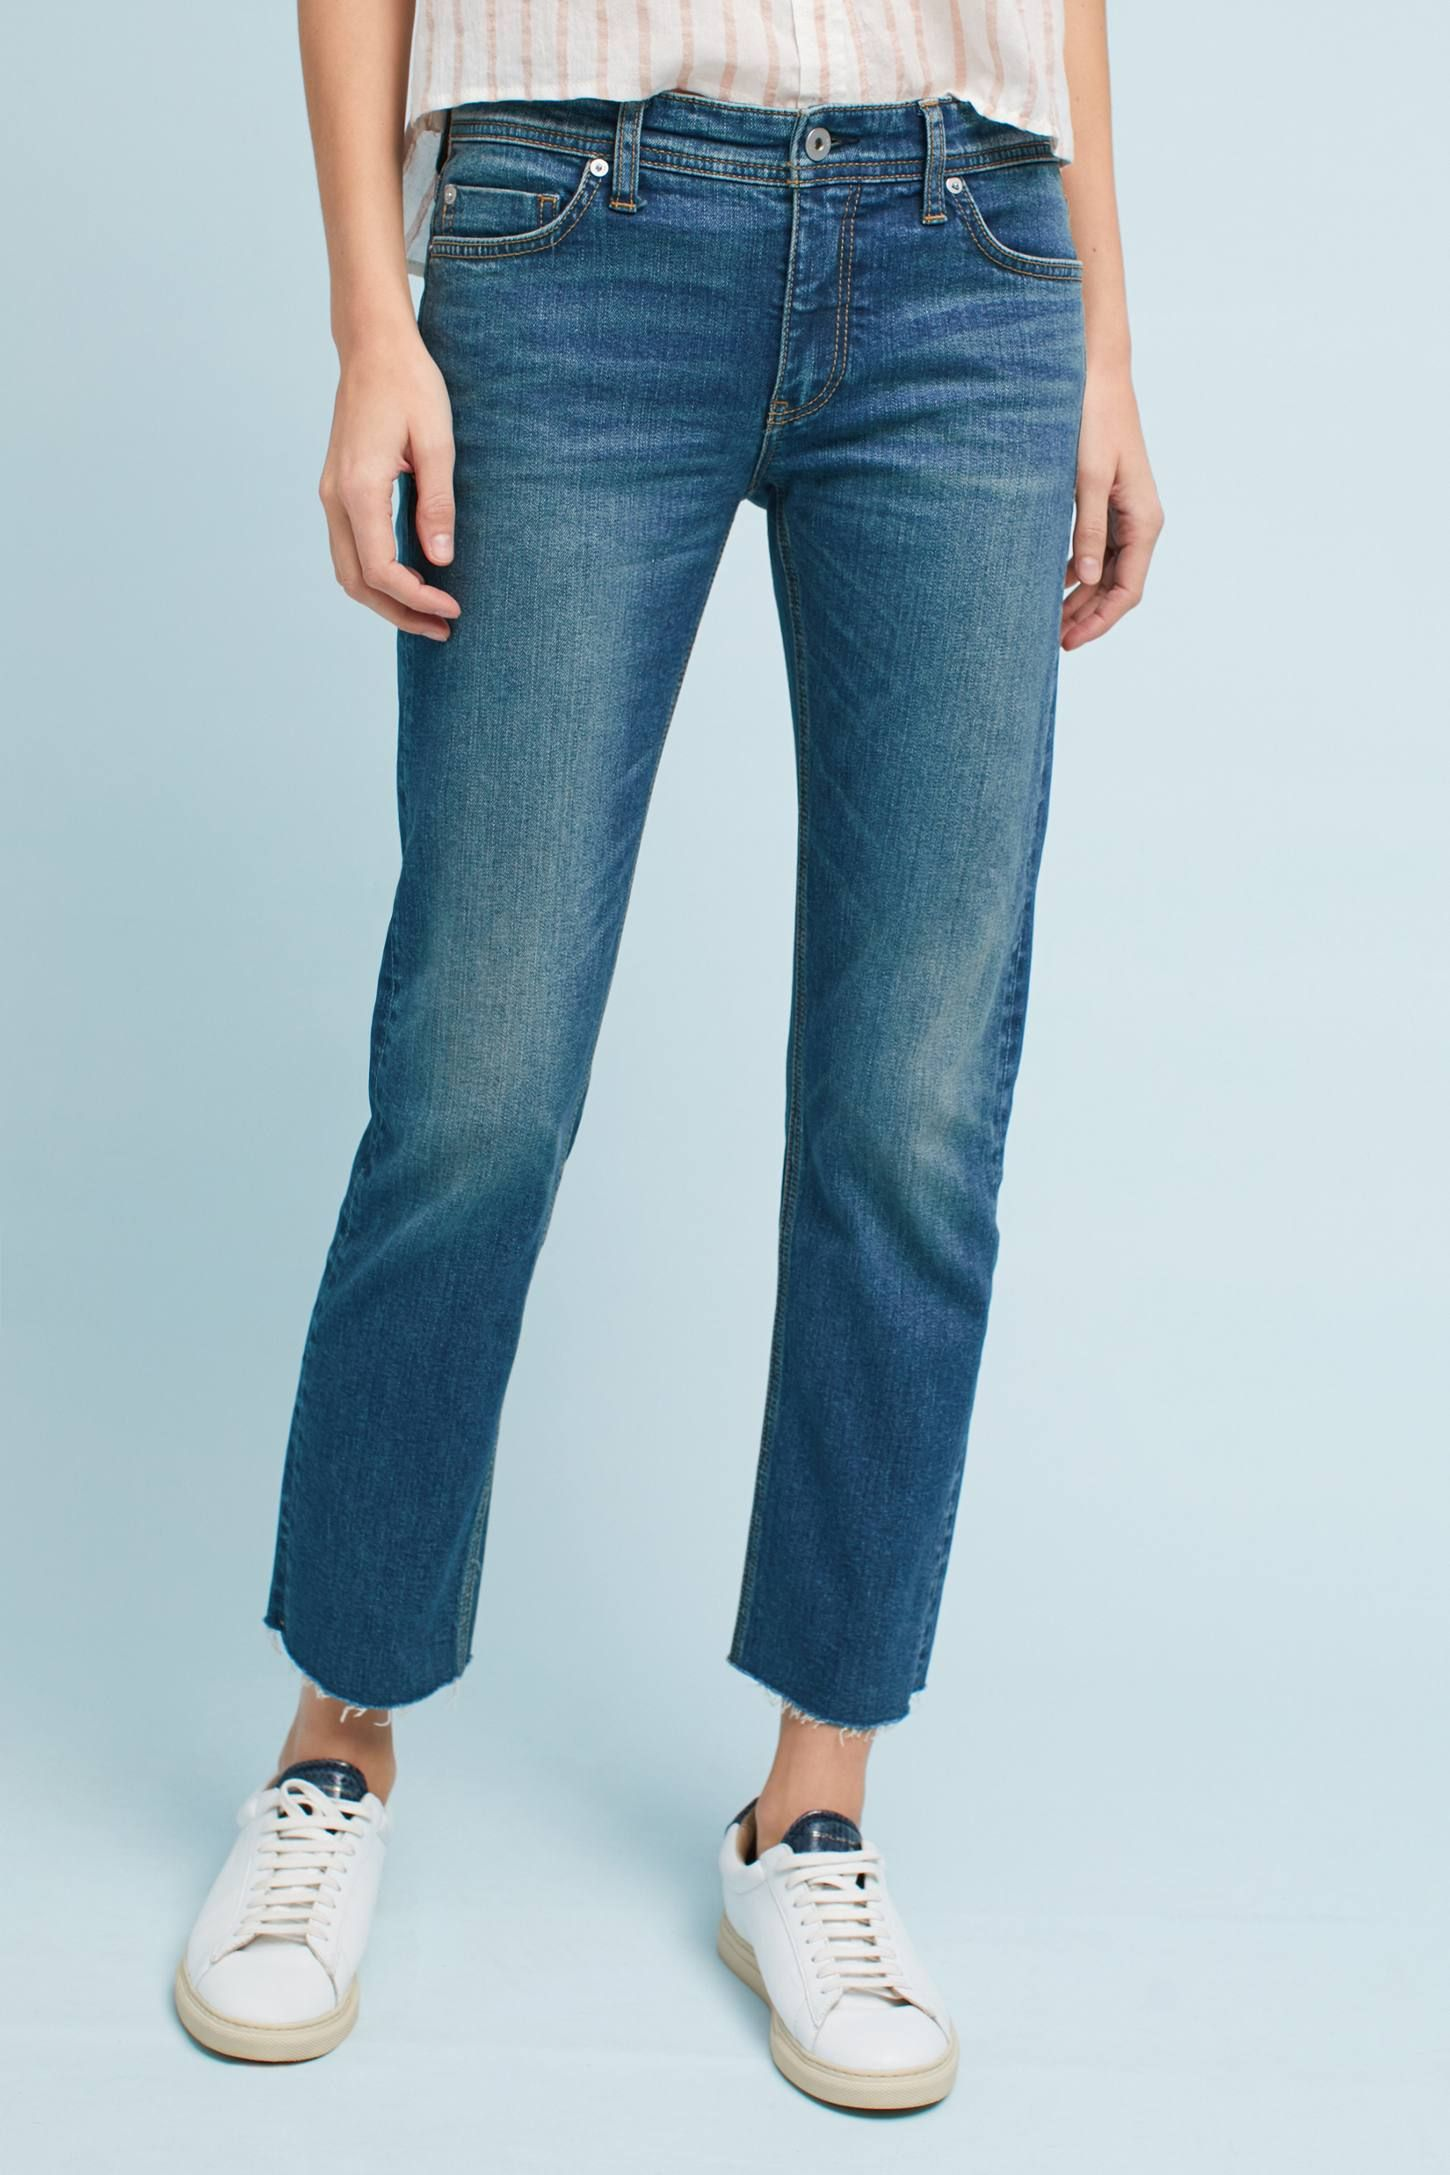 The Pilcro Mid Rise Slim Straight Jeanore Anthropologie At Today Read Customer Reviews Discover Product Detailore